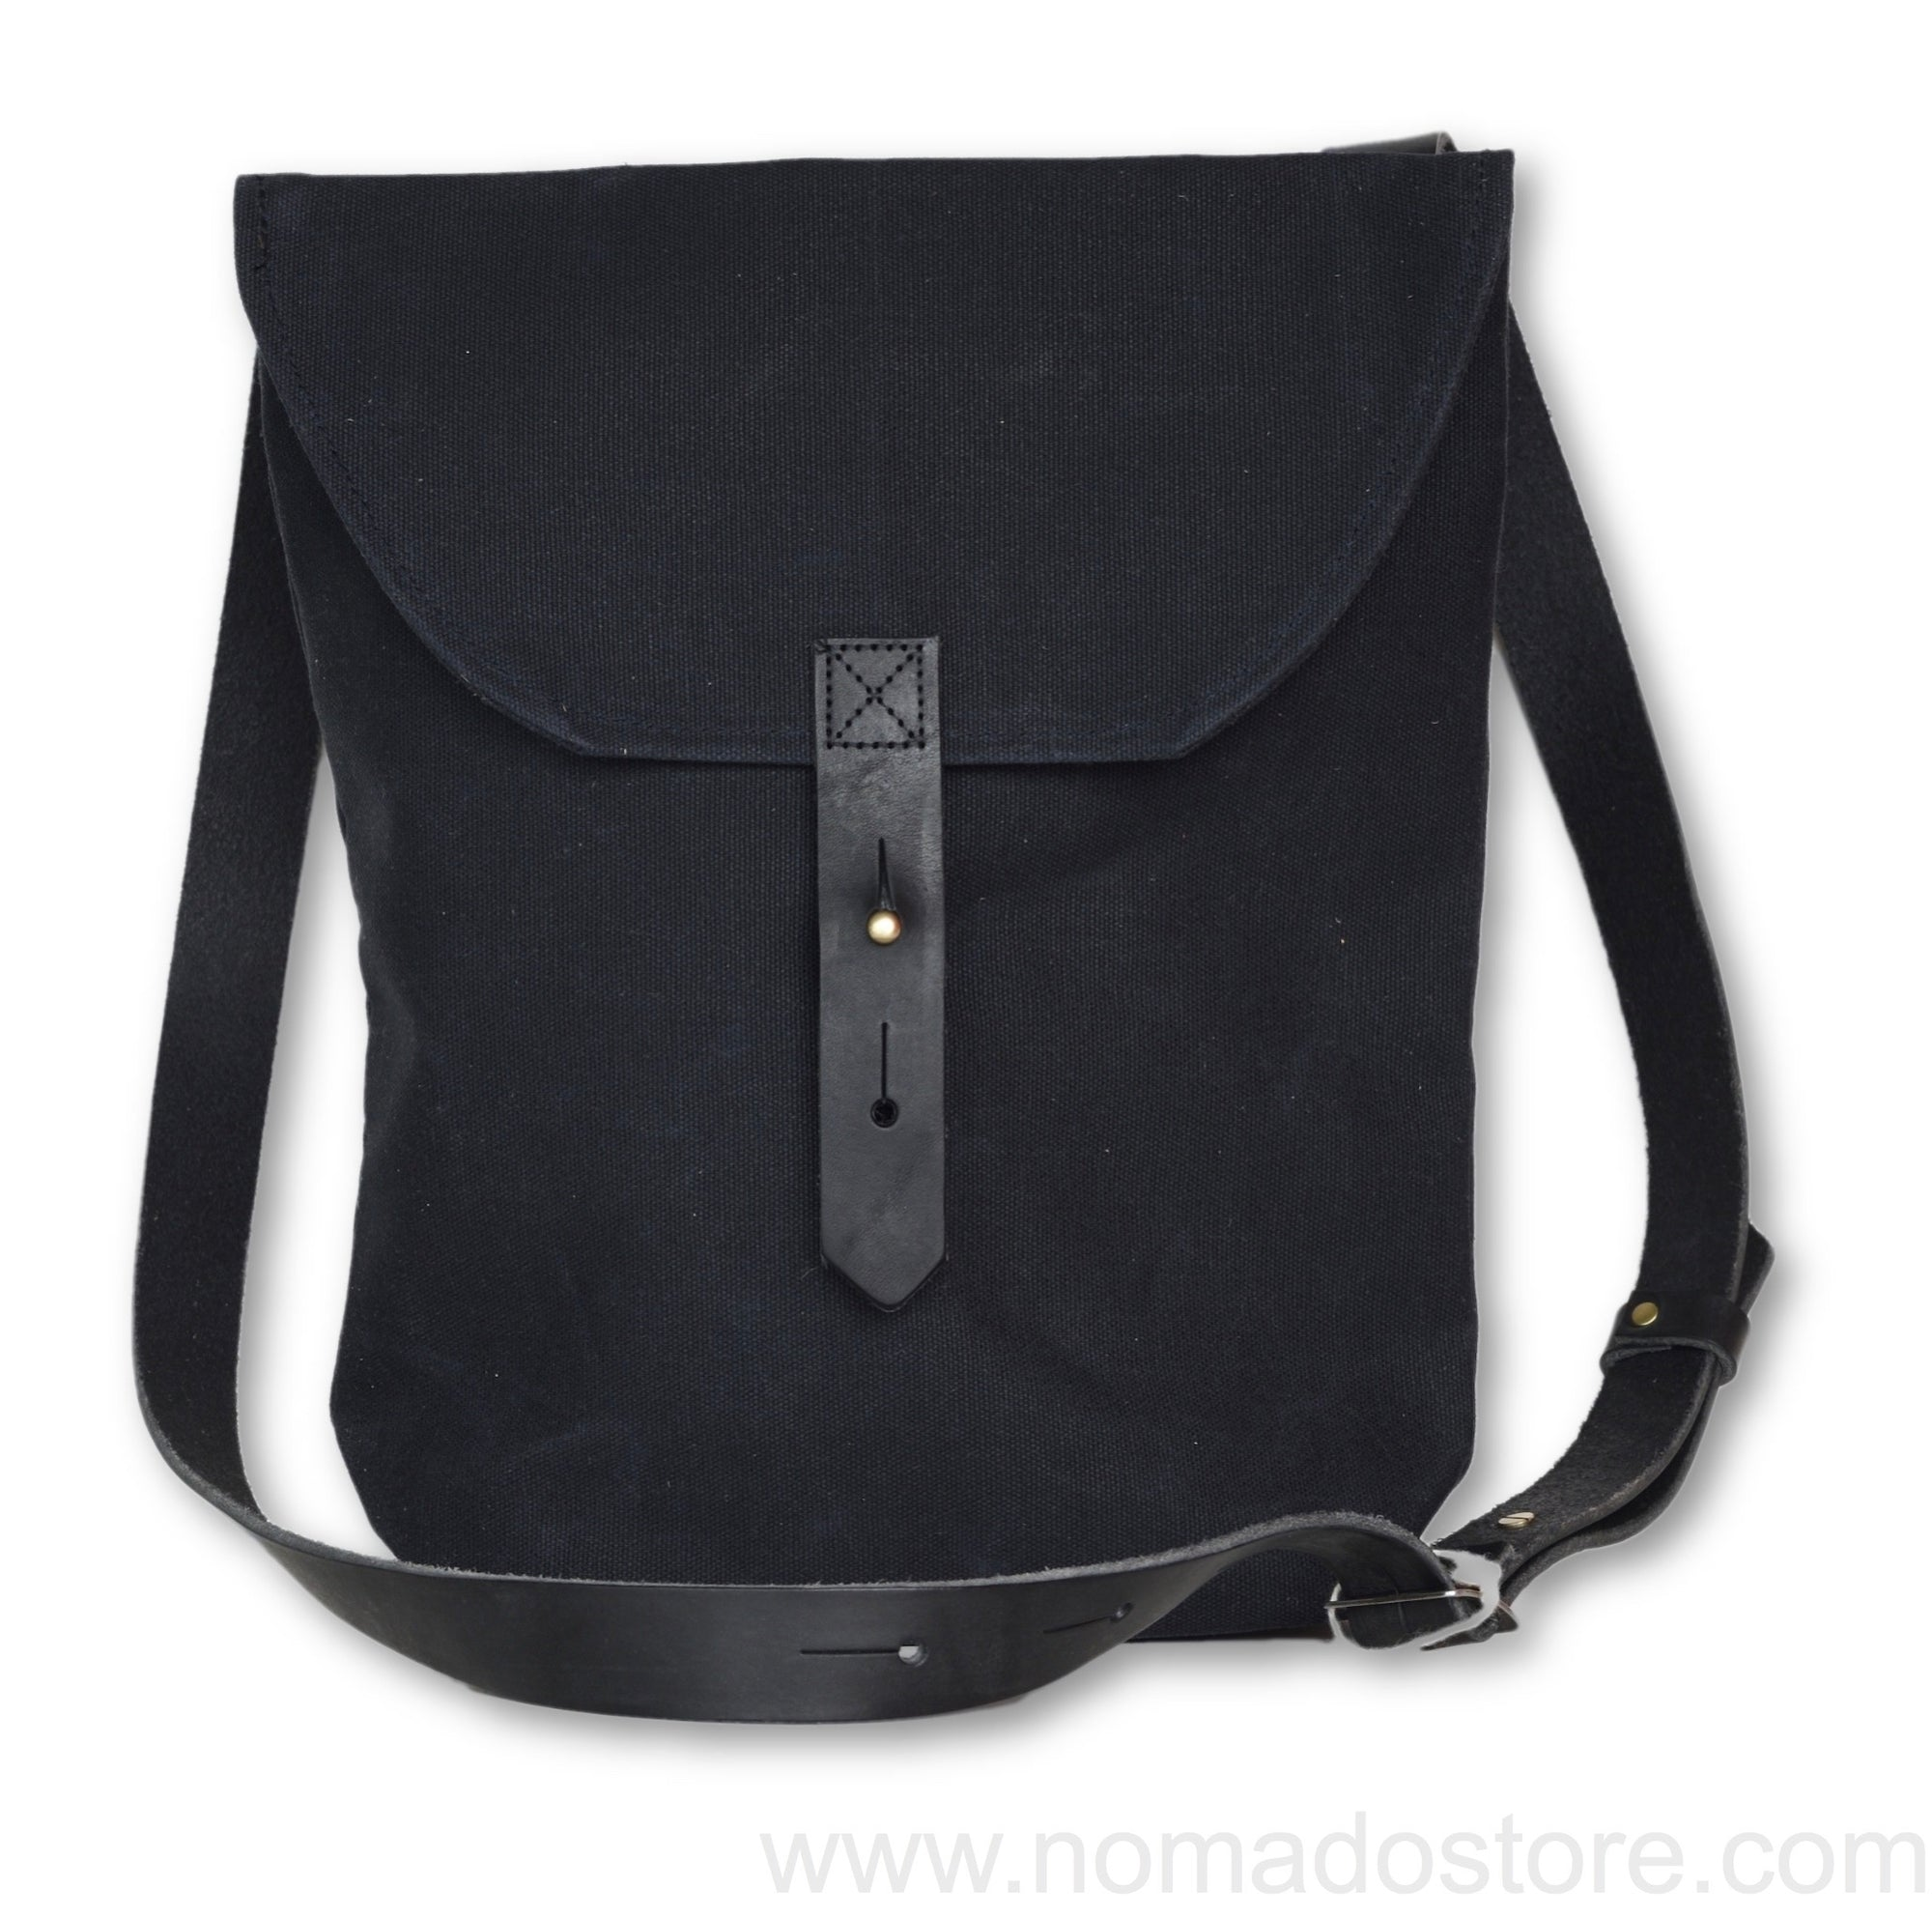 Peg and Awl The Hunter Satchel - All black - NOMADO Store